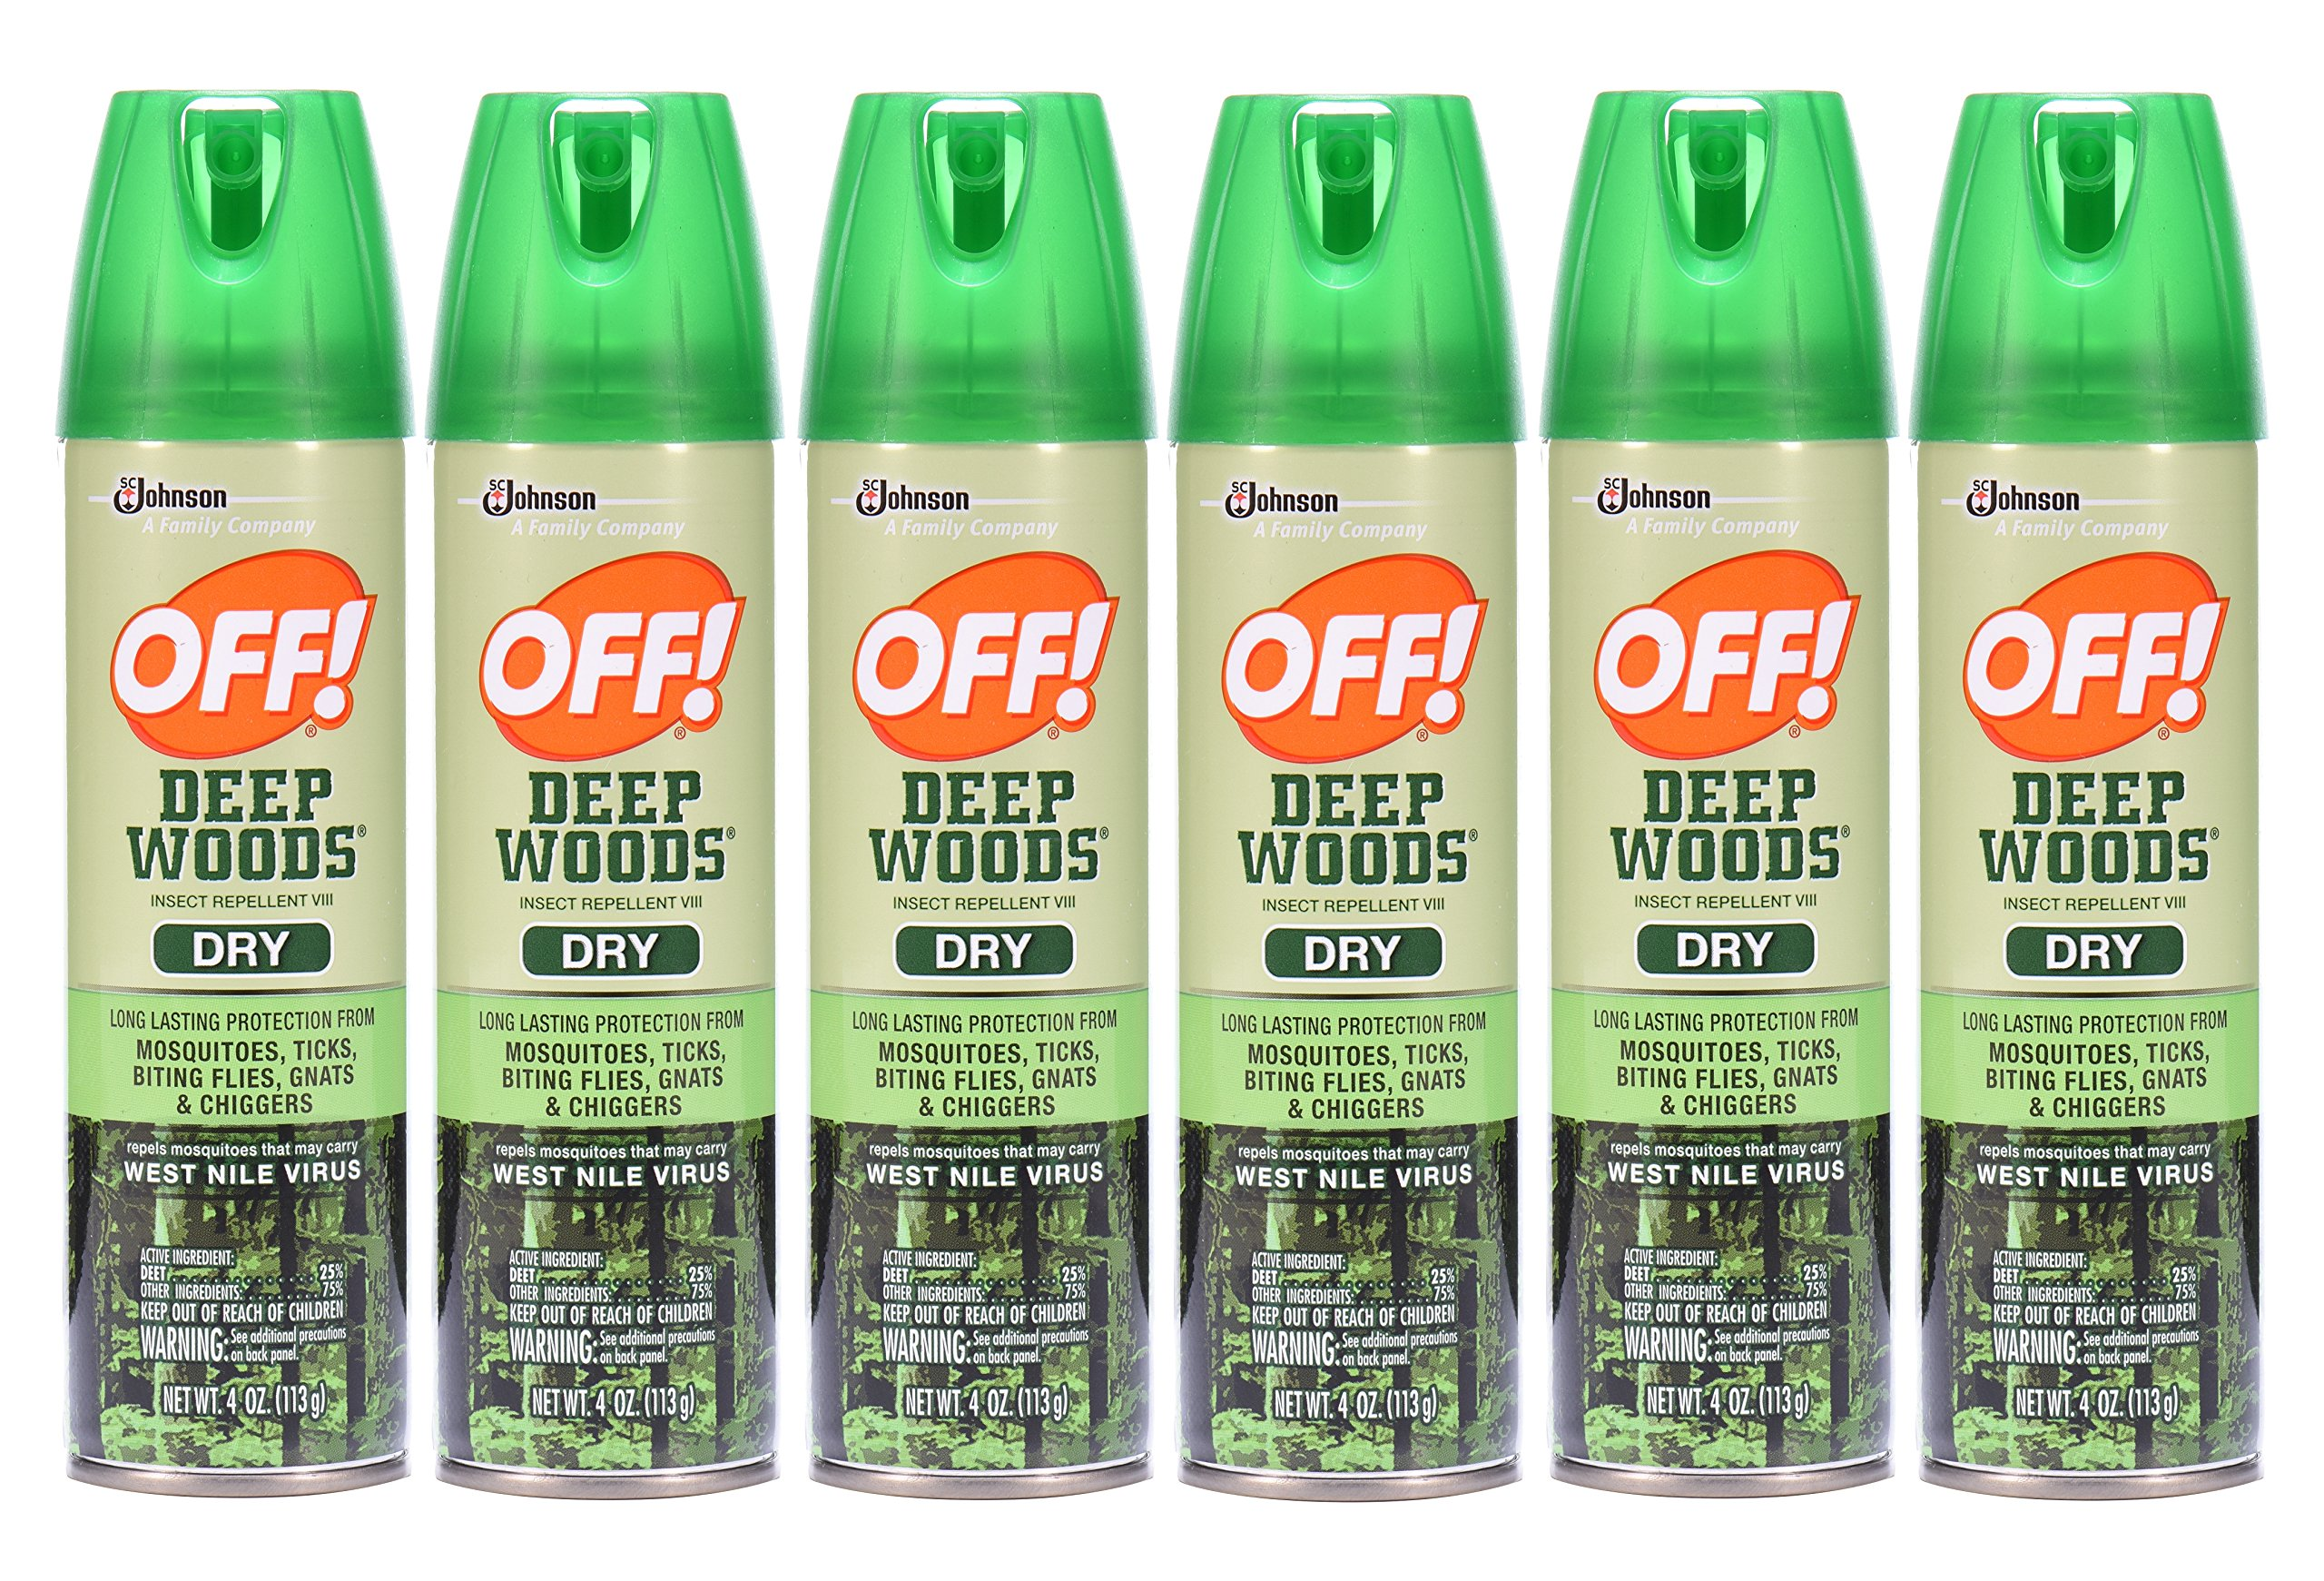 Off! Deep Woods Dry Insect Repellent VIII 4 oz (6 Pack)